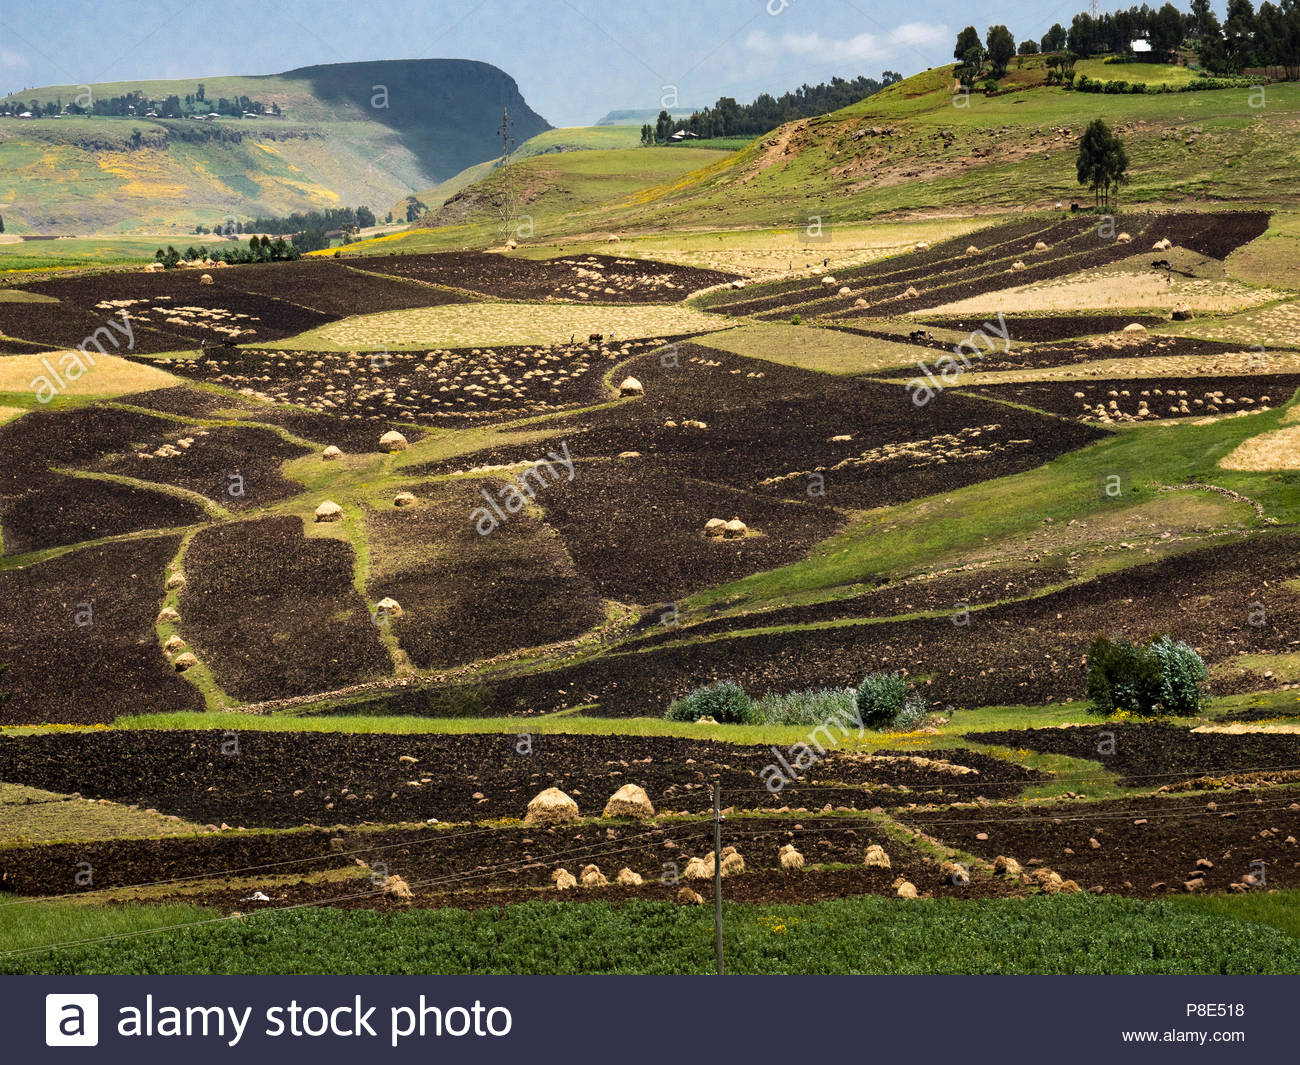 Fields and agriculture in the North, Ethiopia - Stock Image